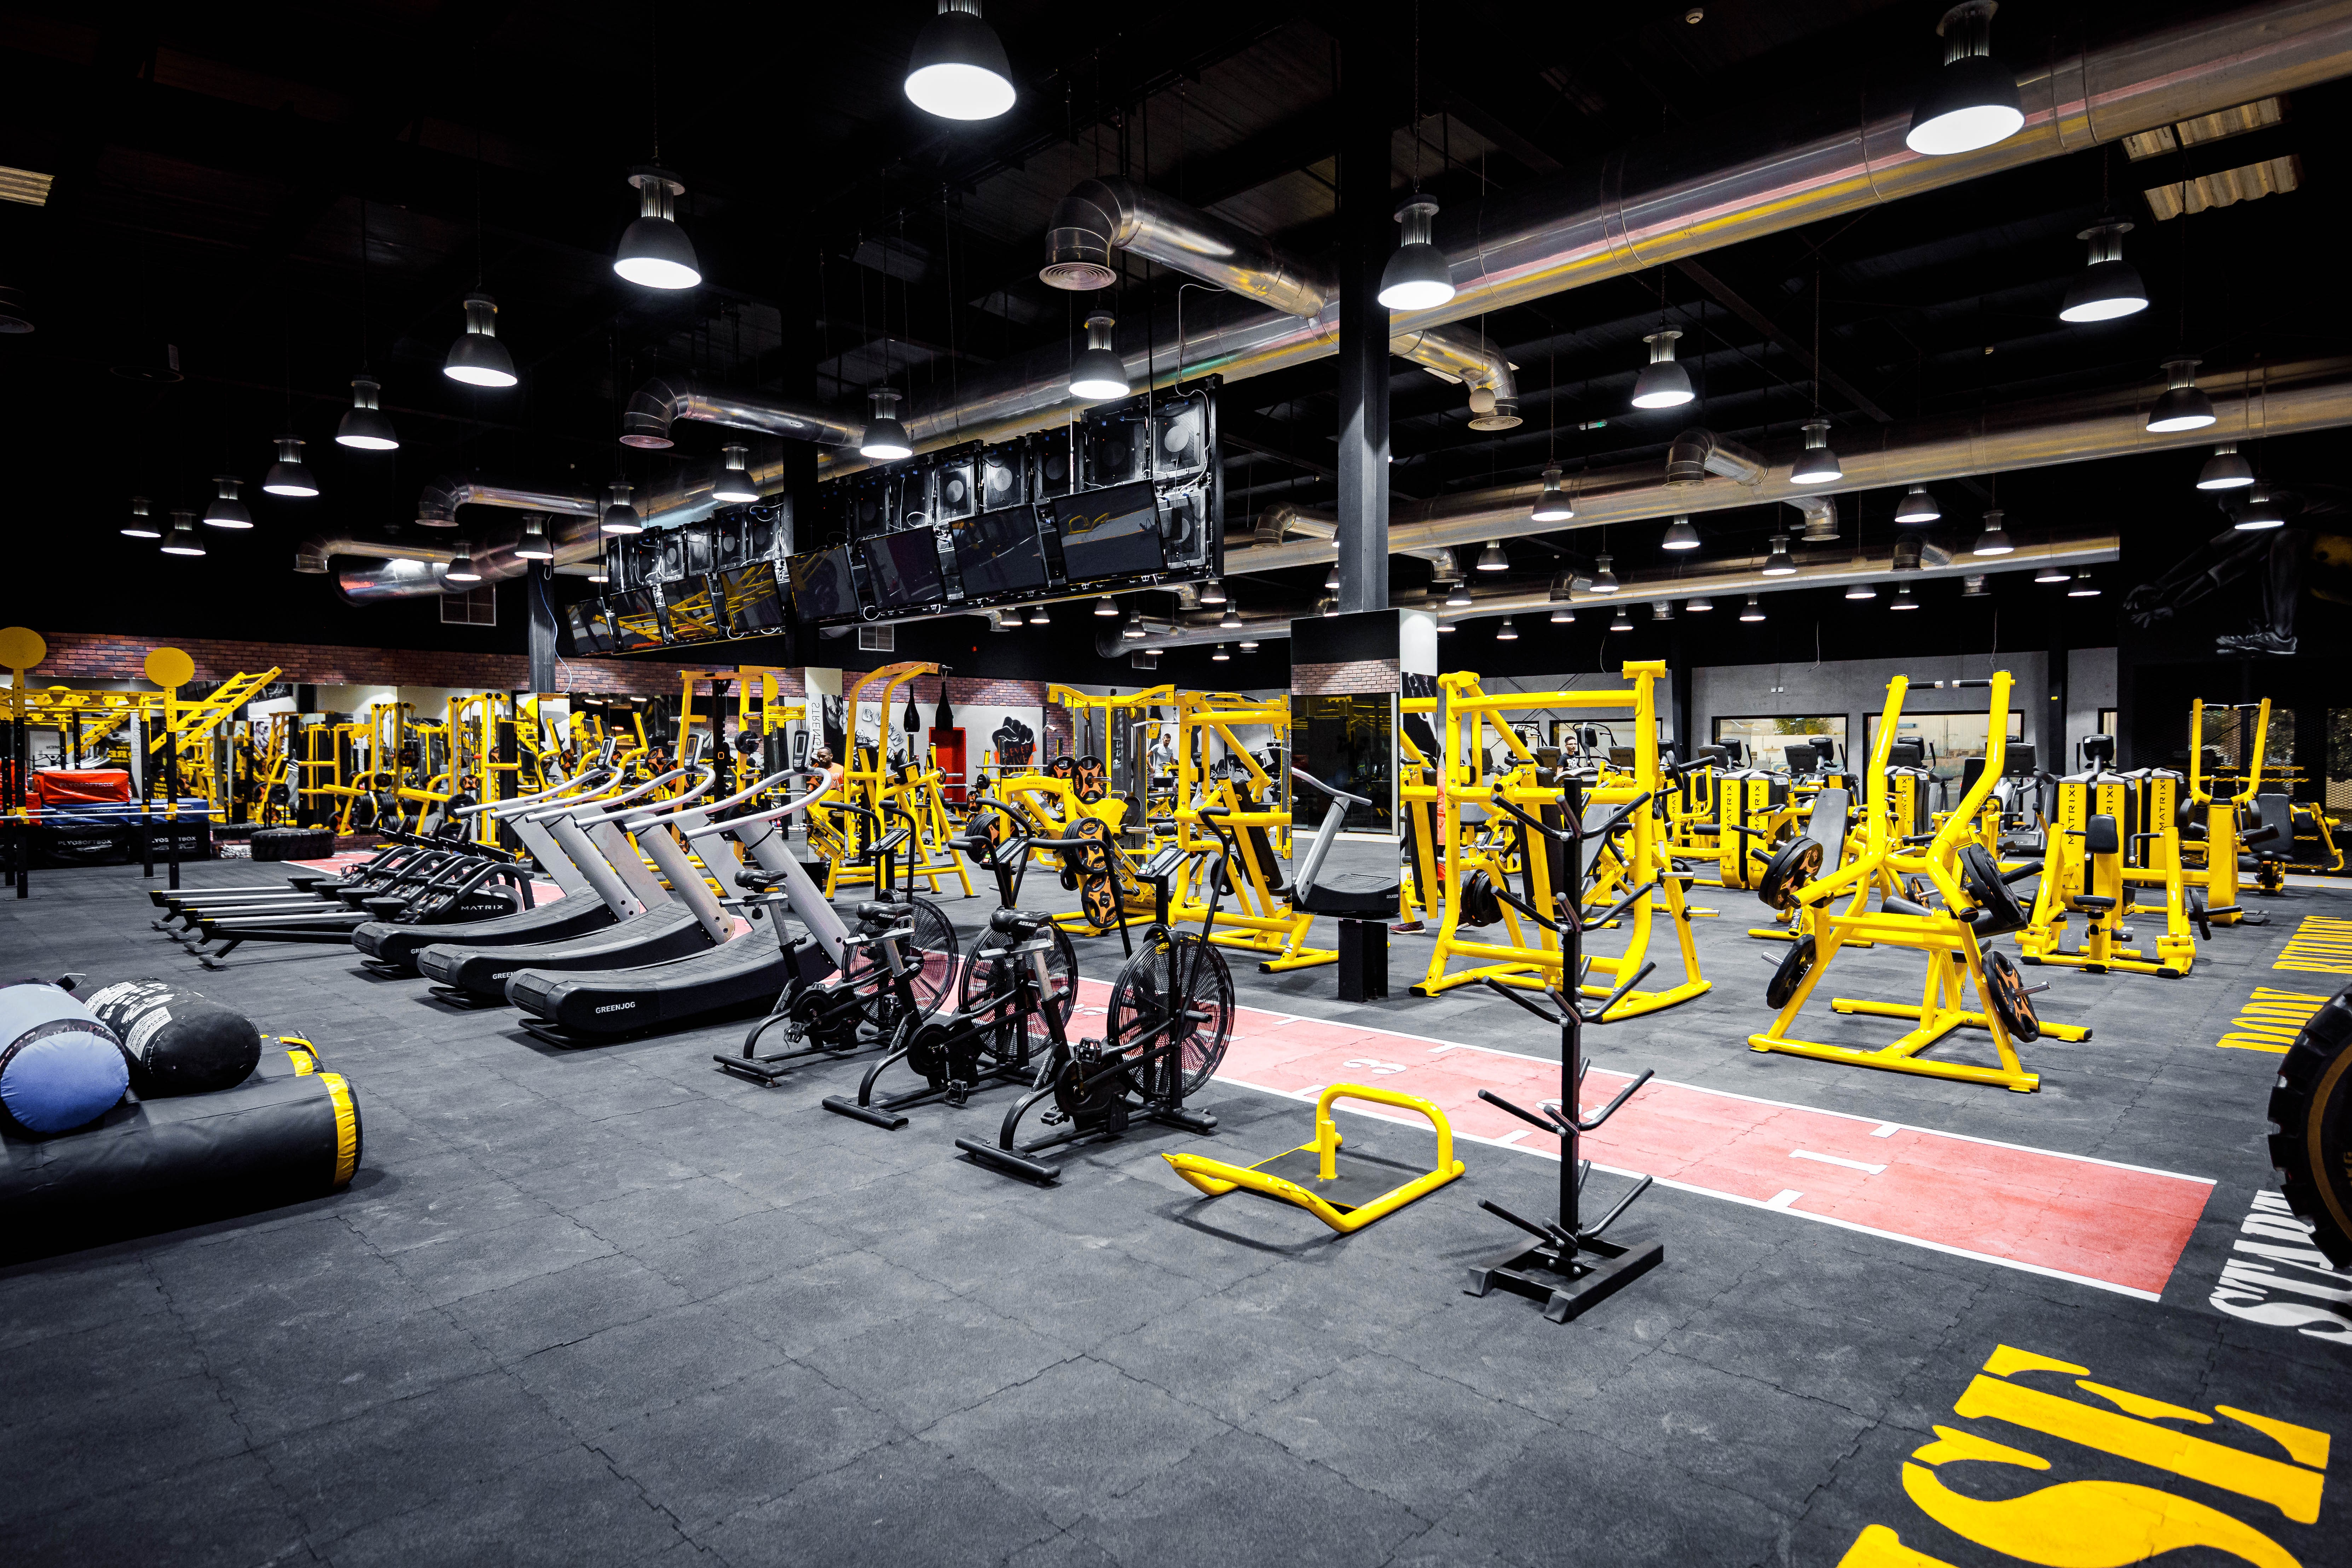 Max Burn Gym Fitness And Training Centre Linkedin